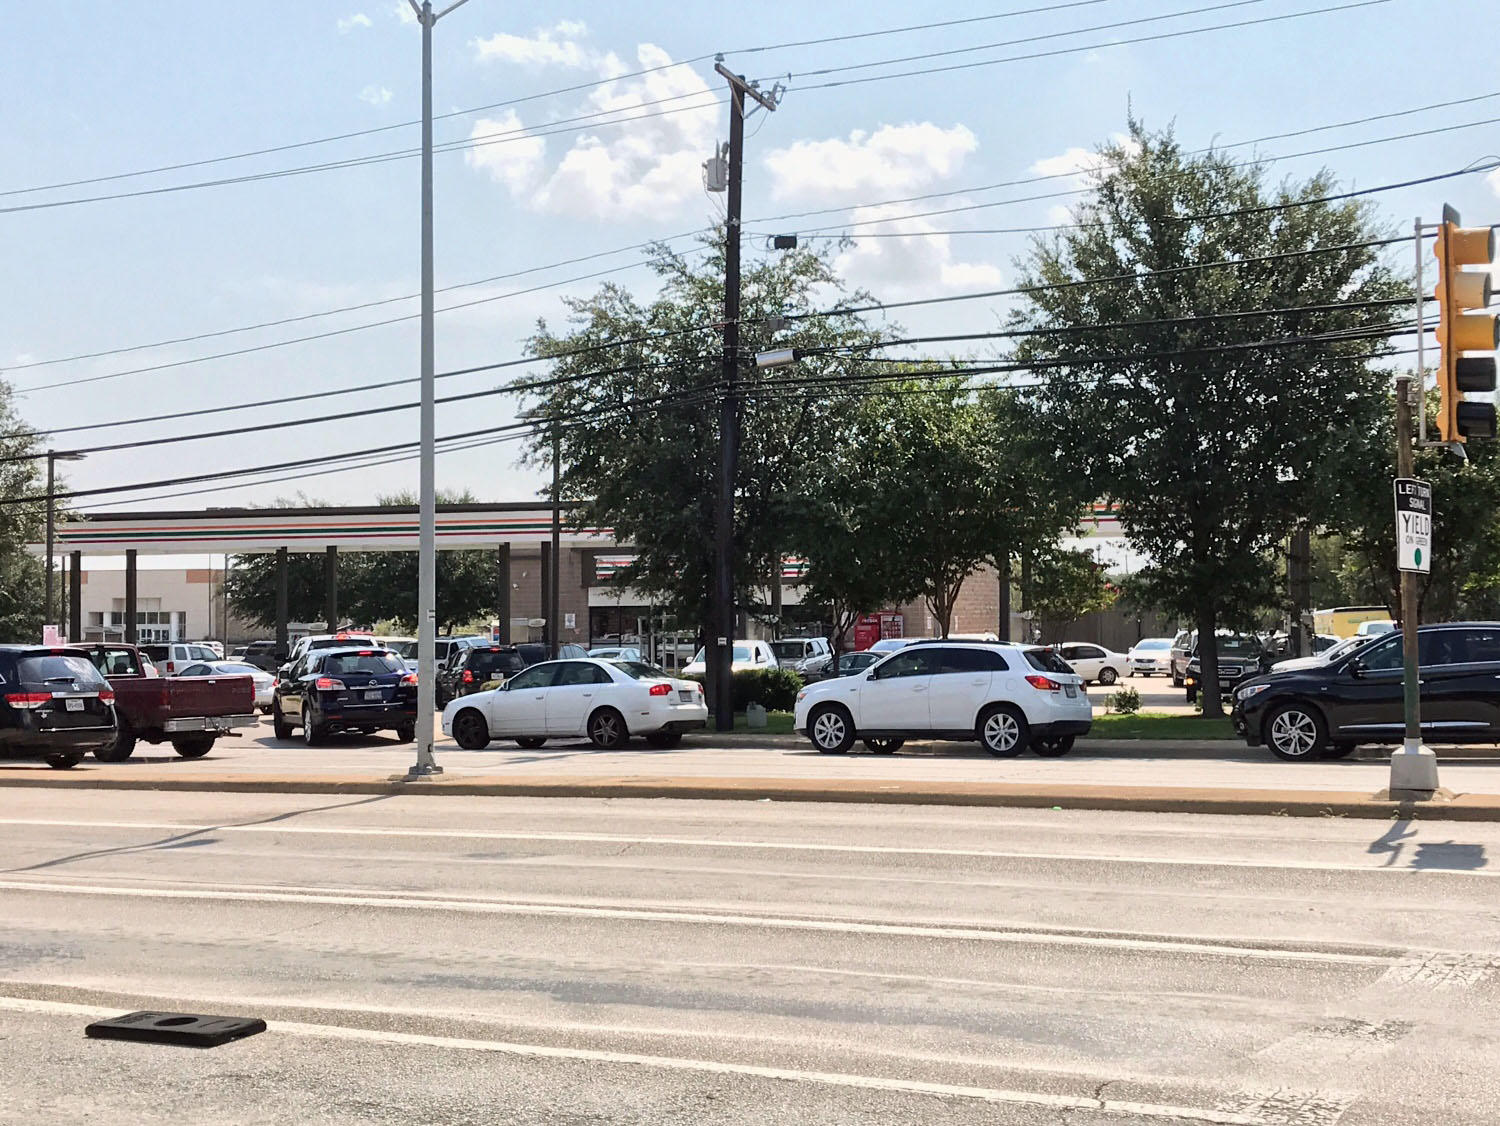 At the 7 Eleven at Skillman and Southwestern in northeast Dallas regular gas was priced at $2.49 per gallon but lines of cars at the entrance of the station overflowed into the road